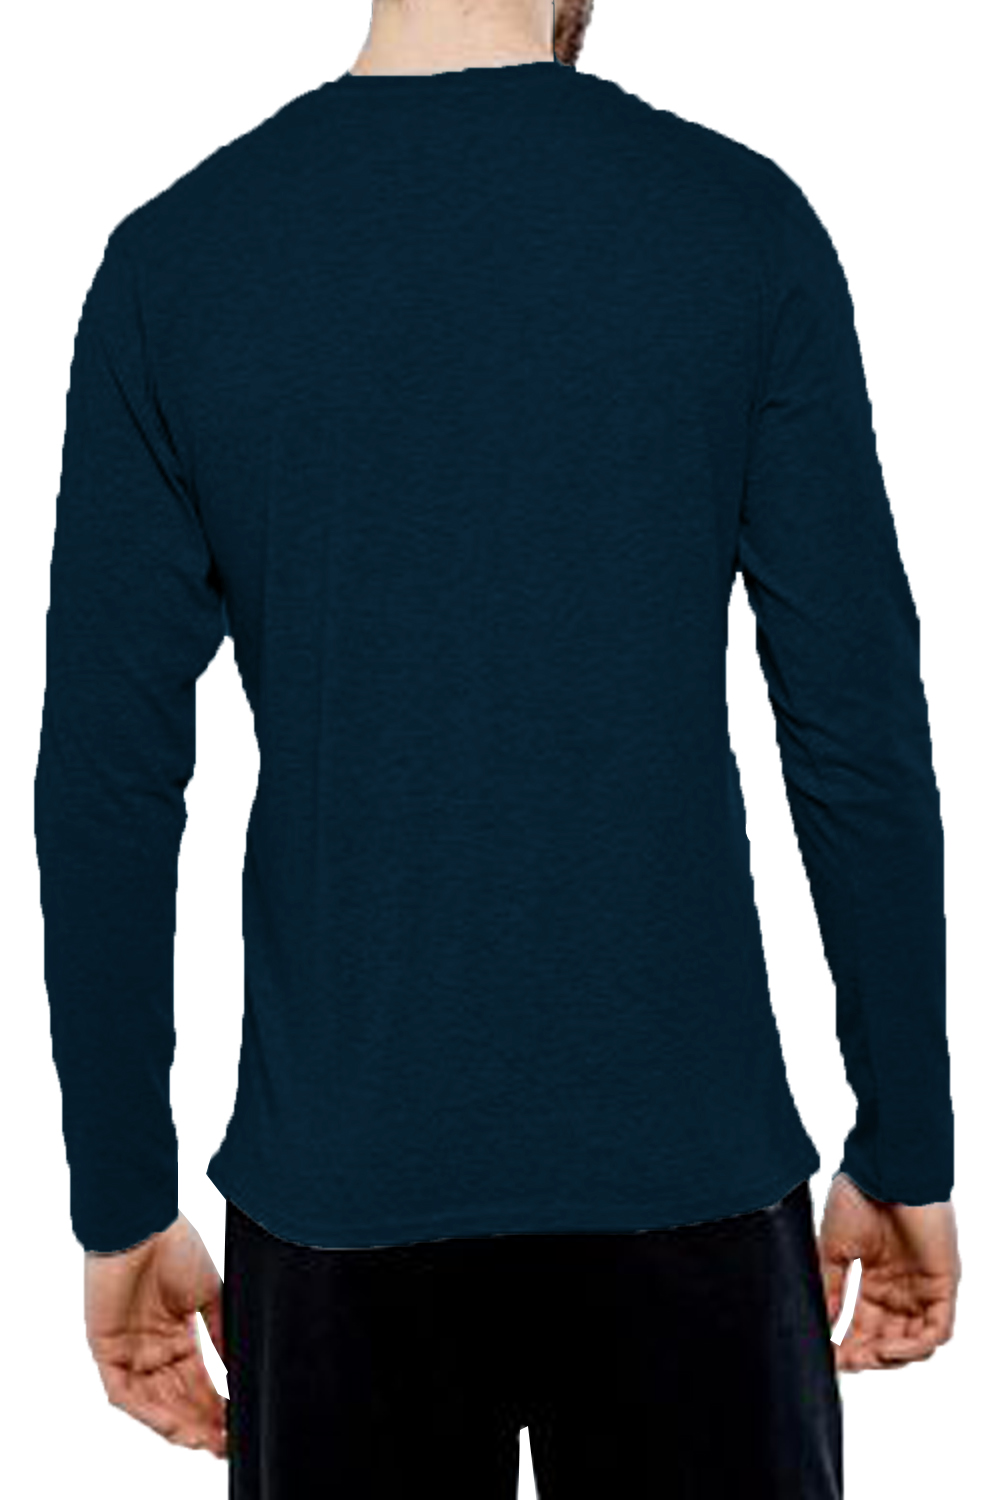 Threadbare-Mens-William-Long-Sleeve-T-Shirt-Cotton-Stretch-Round-Neck-Winter-Top thumbnail 7